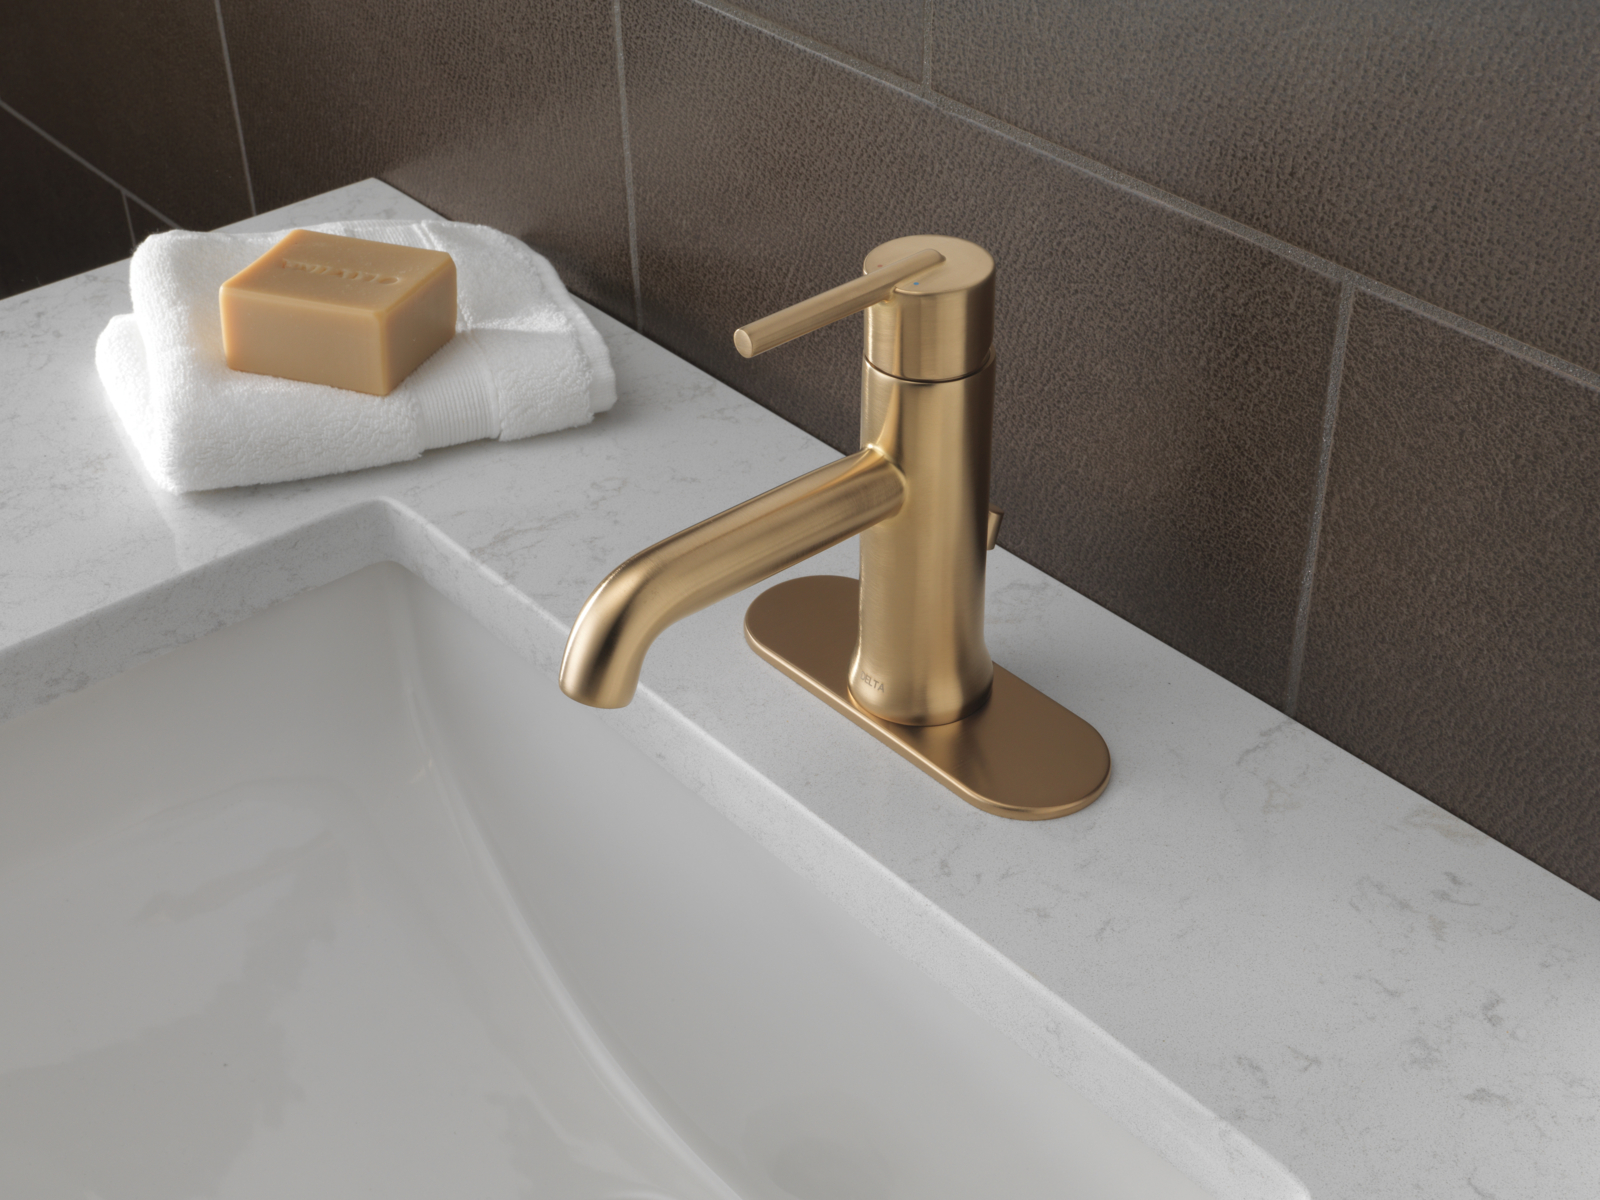 Elite Inspirational Delta Trinsic Bathroom Faucet 52 About Remodel Modern regarding Awesome Delta Trinsic Bathroom Faucet